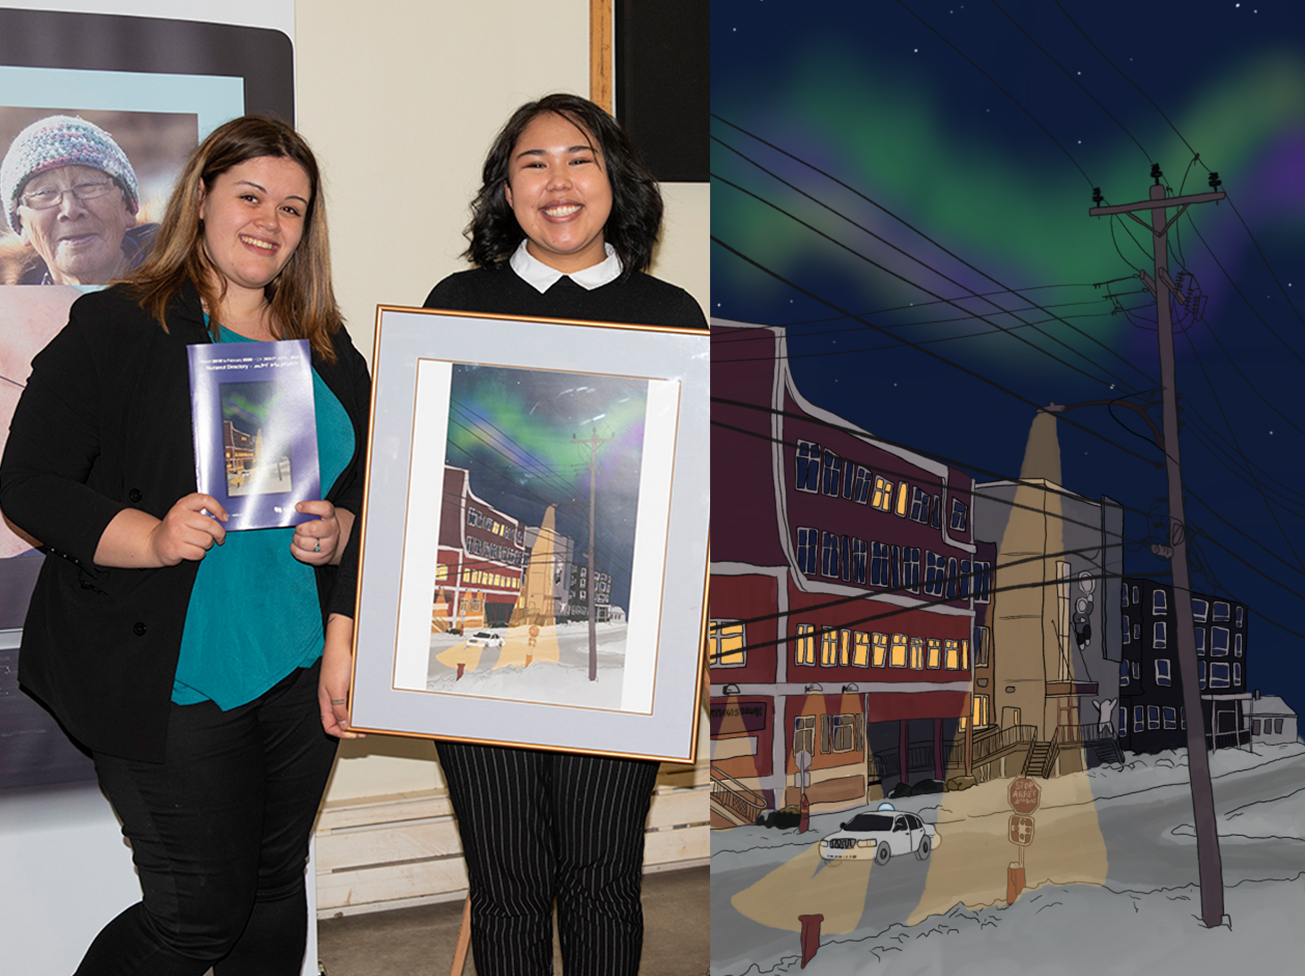 Dayle Kubluitok, second from left, holds Northwestel's 2019-20 Nunavut phone book, which features her winning artwork design. She's seen with Gabby Morrill from Northwestel.  (Photo courtesy of Northwestel)